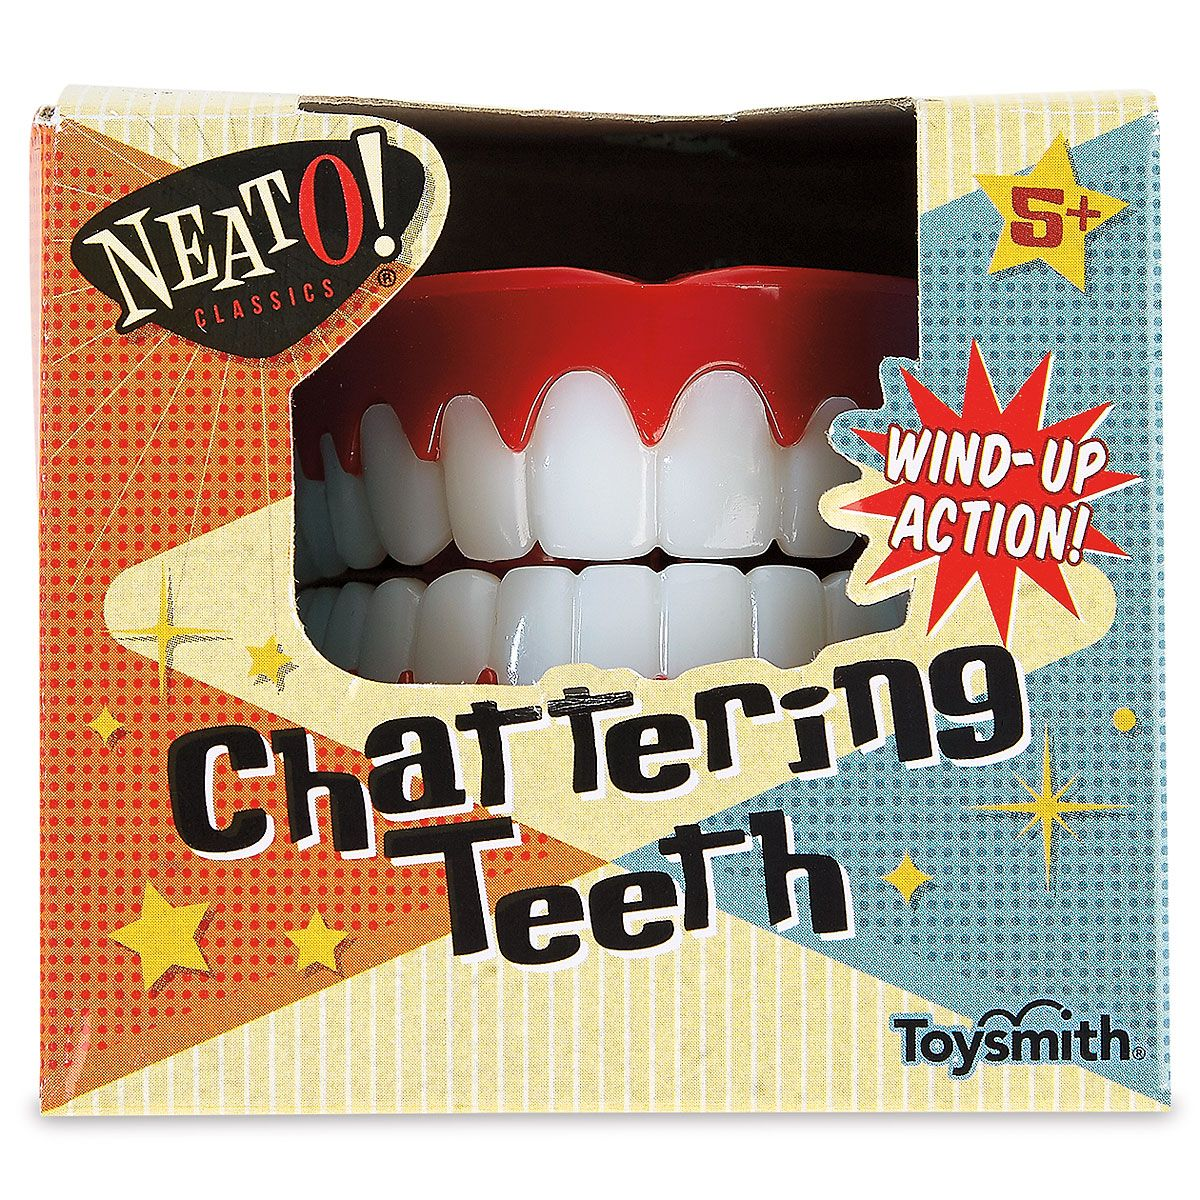 Neato!® Chattering Teeth